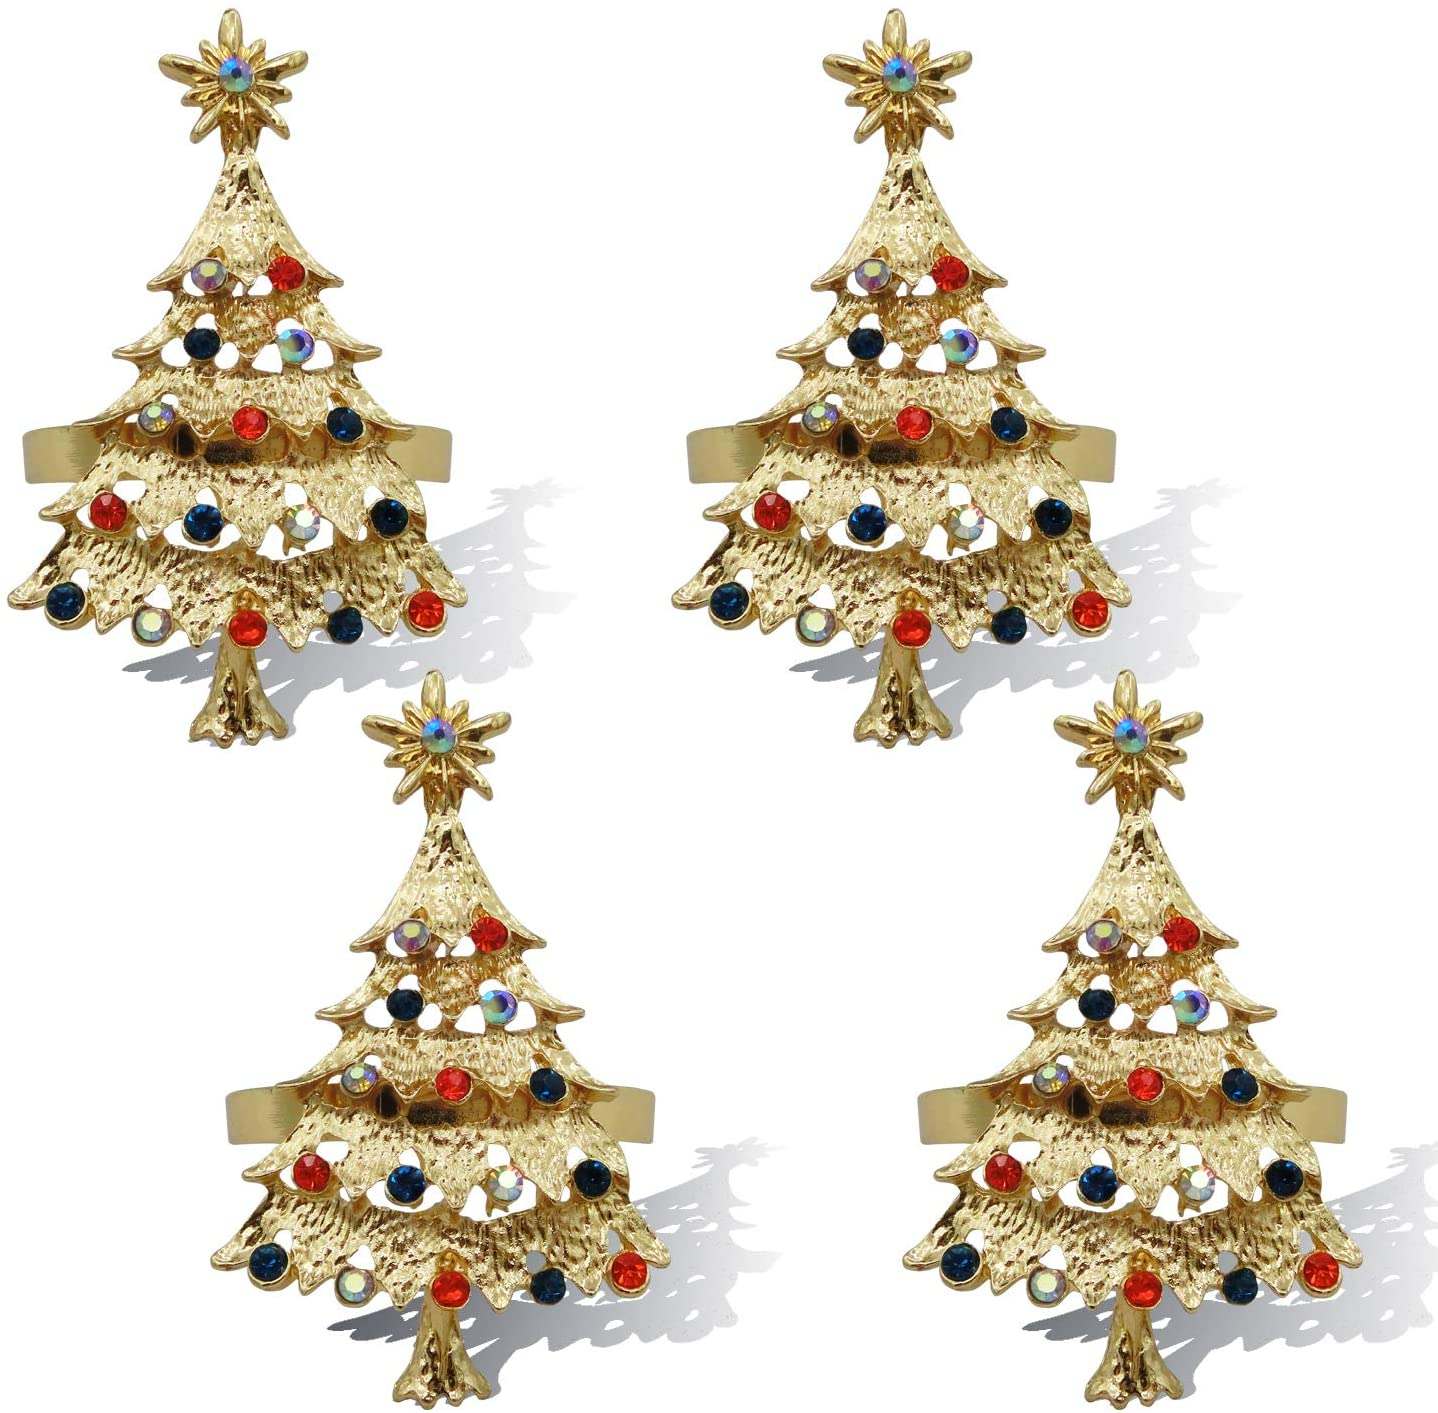 JulyLab Christmas Napkin Rings Set for Home Kitchen Table Settings Decoration Adornment, (Christmas Tree - Gold, 4)